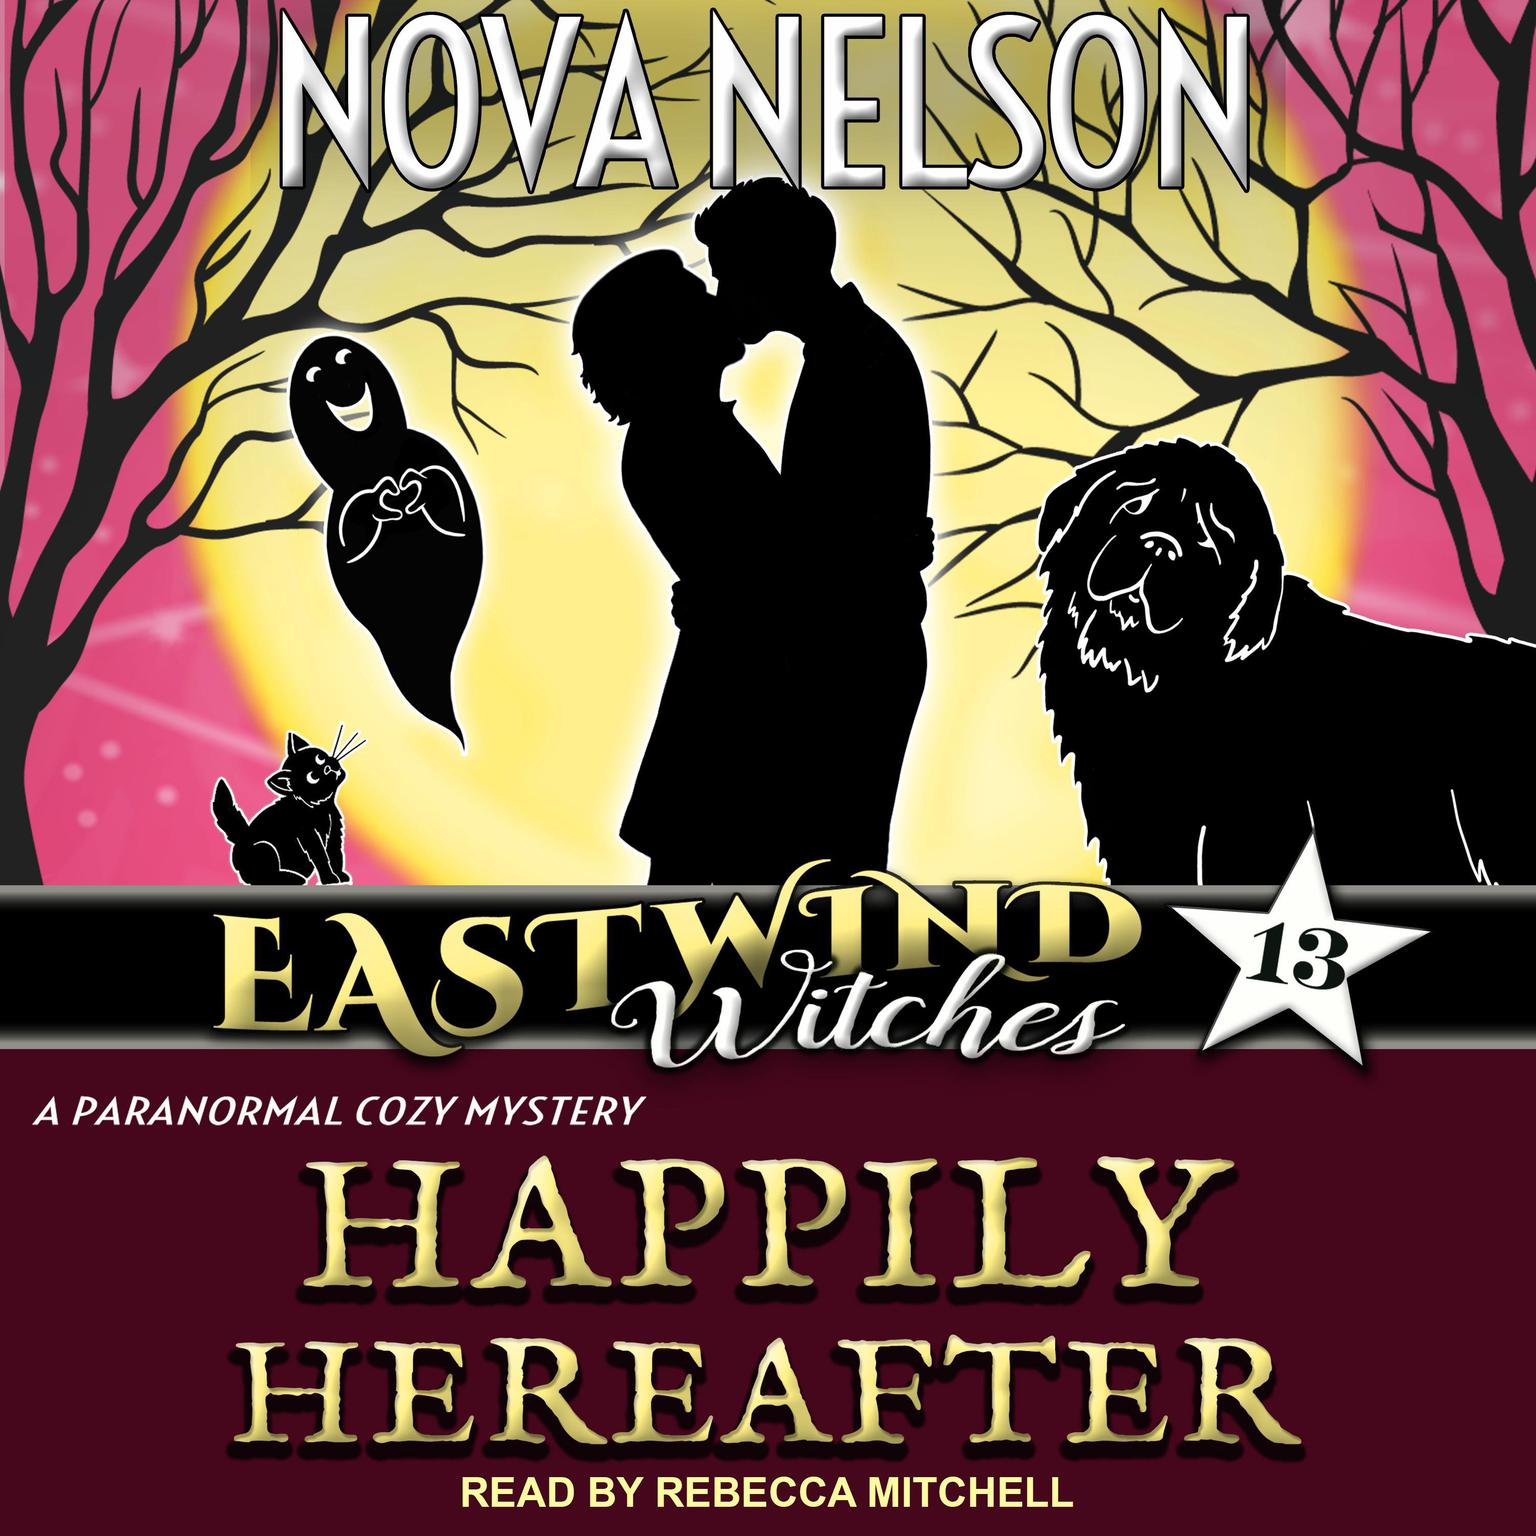 Happily Hereafter: A Paranormal Cozy Mystery Audiobook, by Nova Nelson